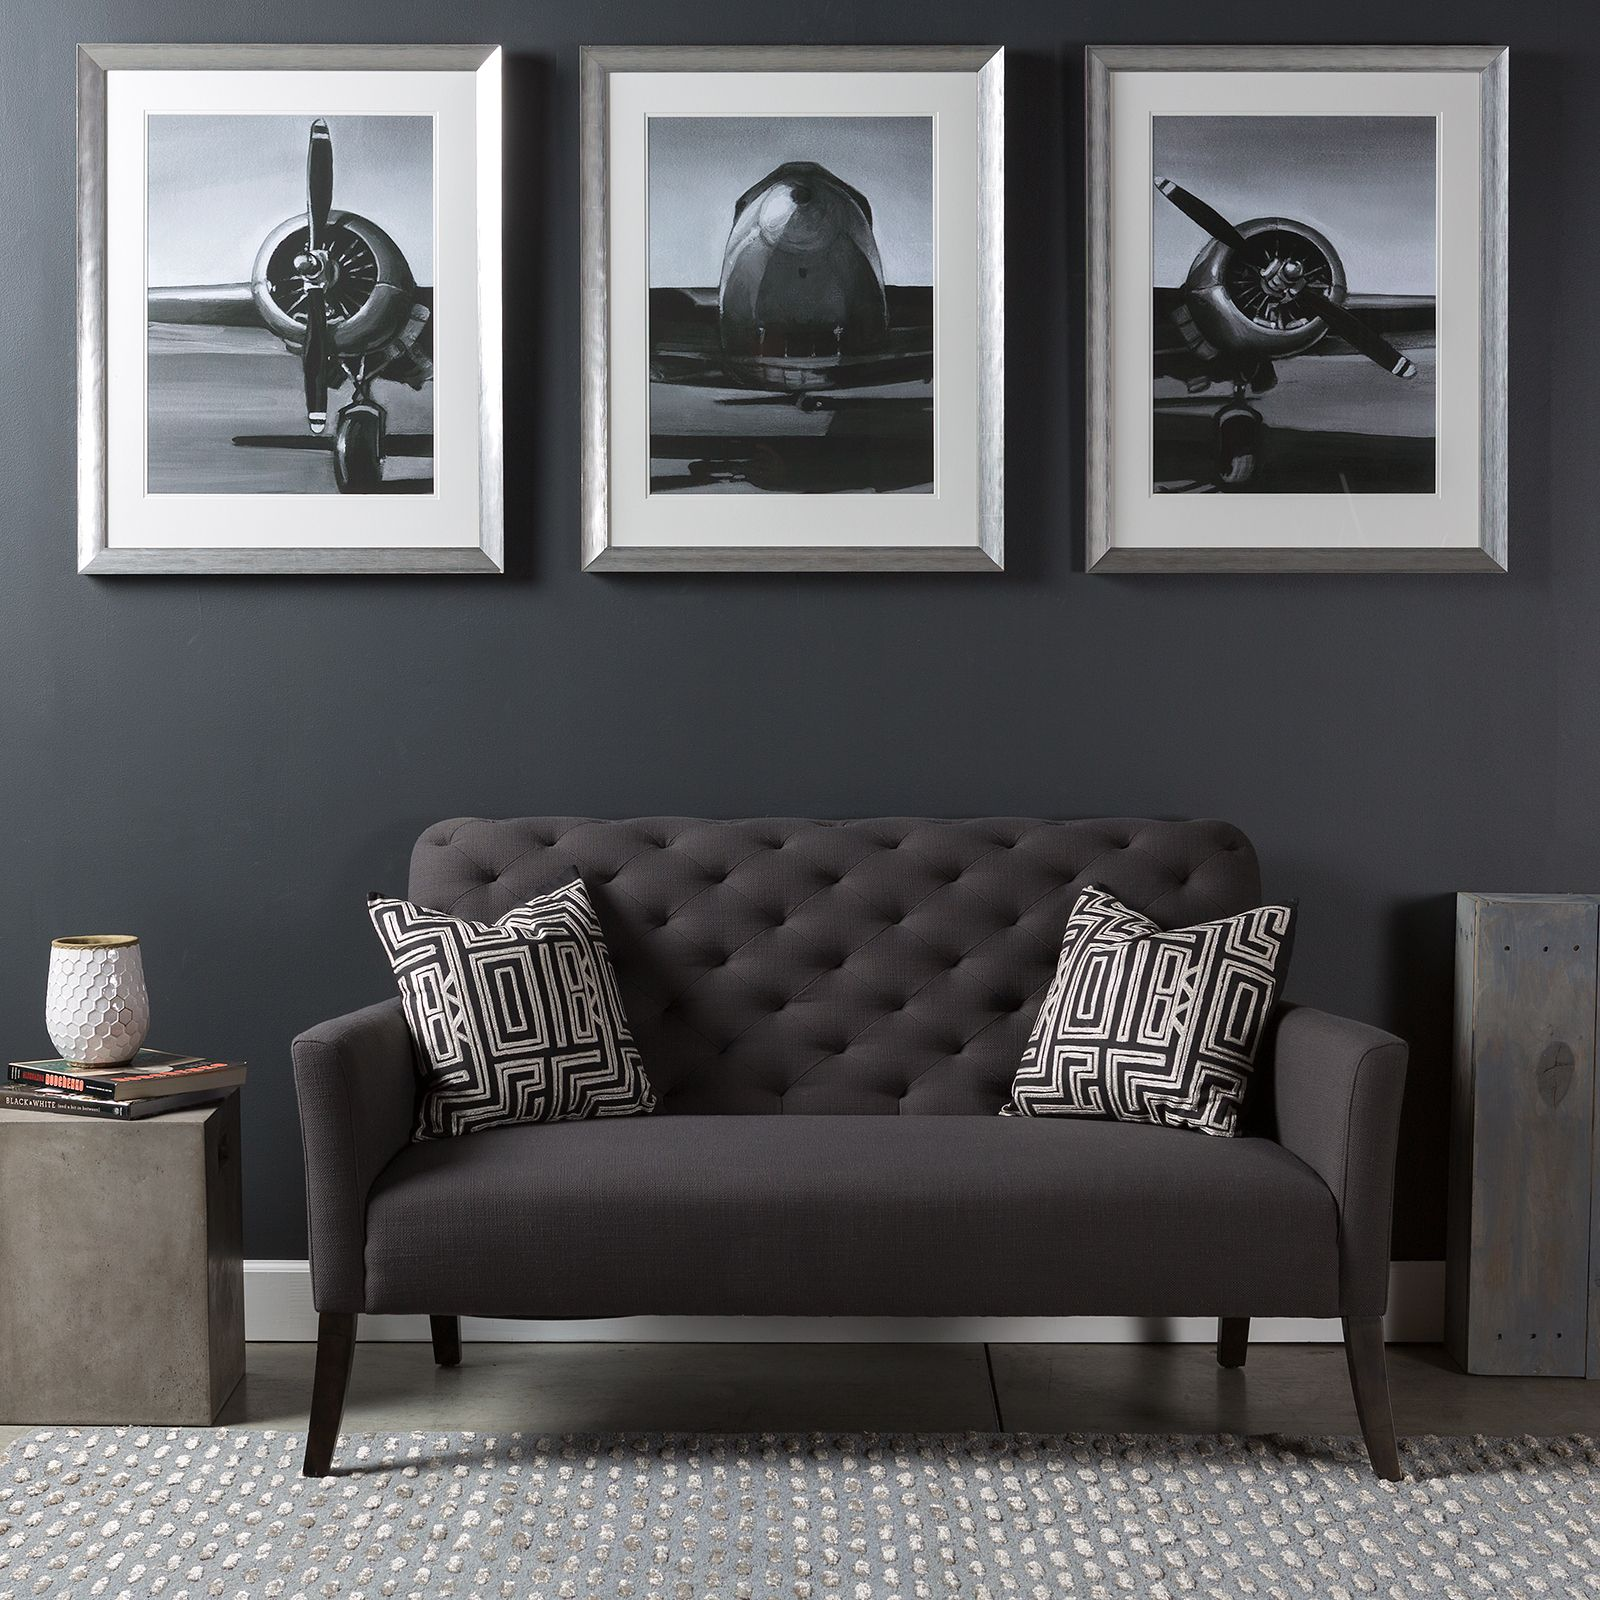 Charmant Triptych Wall Art Piece With A Modern Industrial Flare; A Series Of Three  Photographs Of